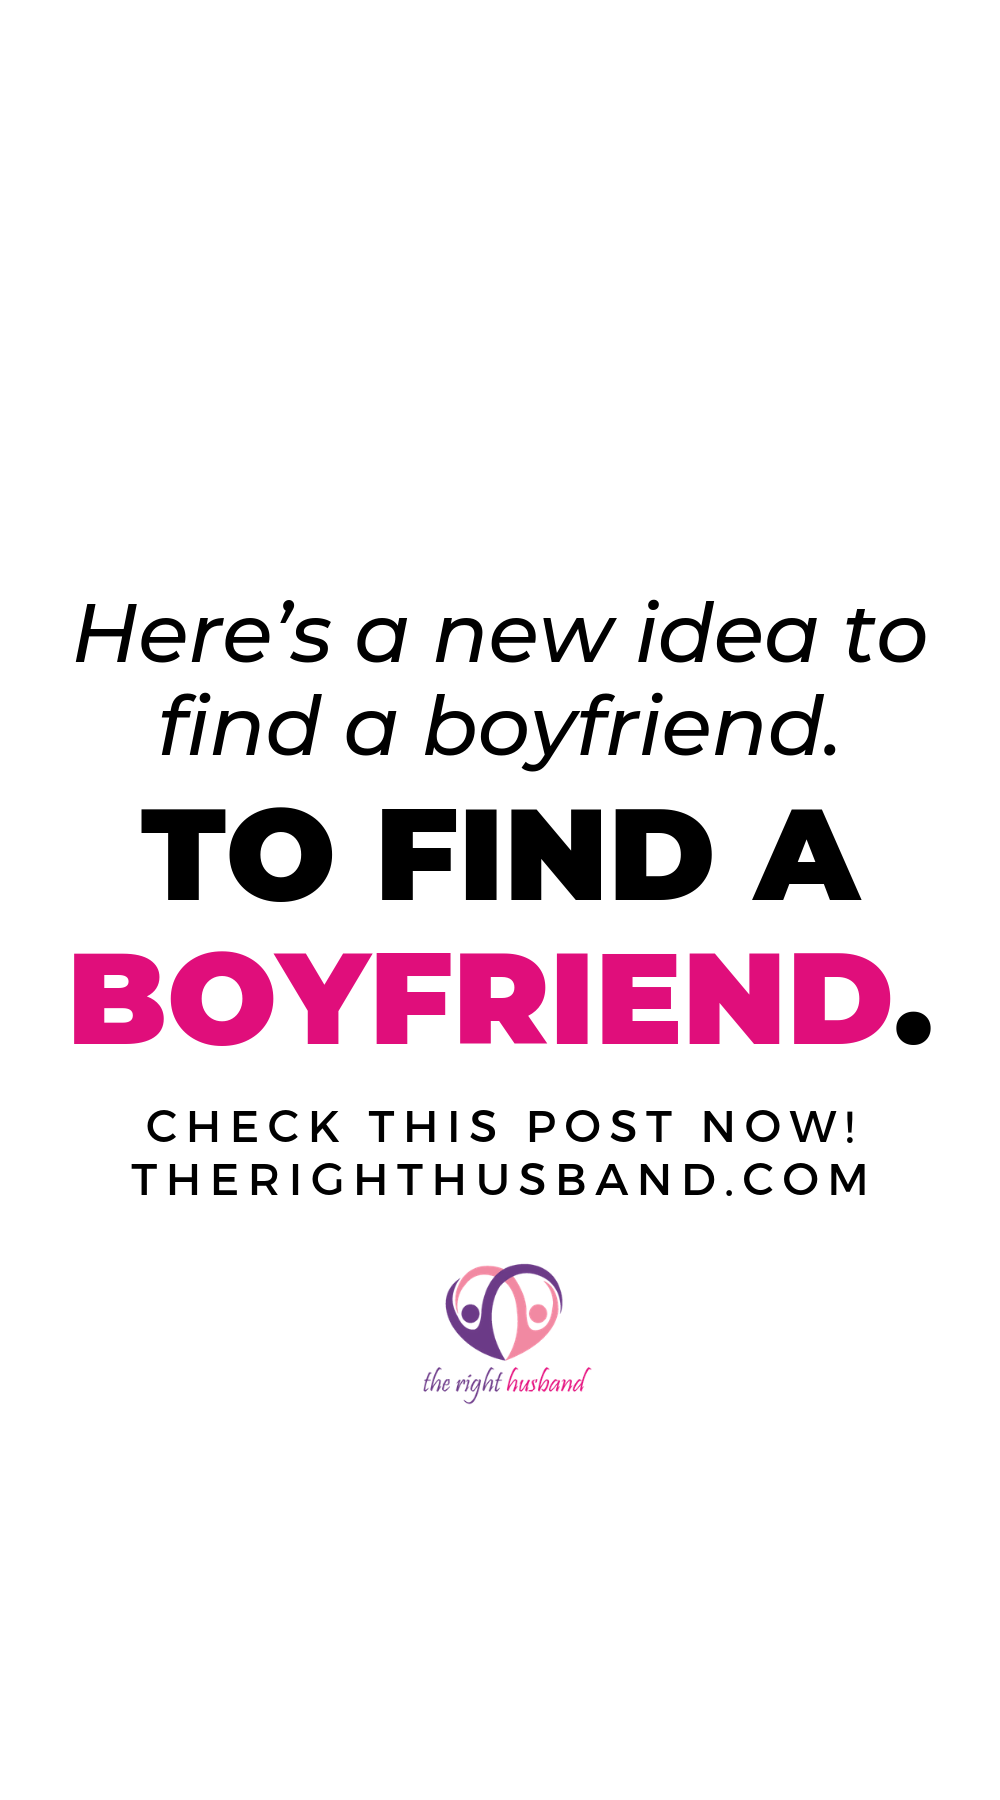 A new way to find a boyfriend 2